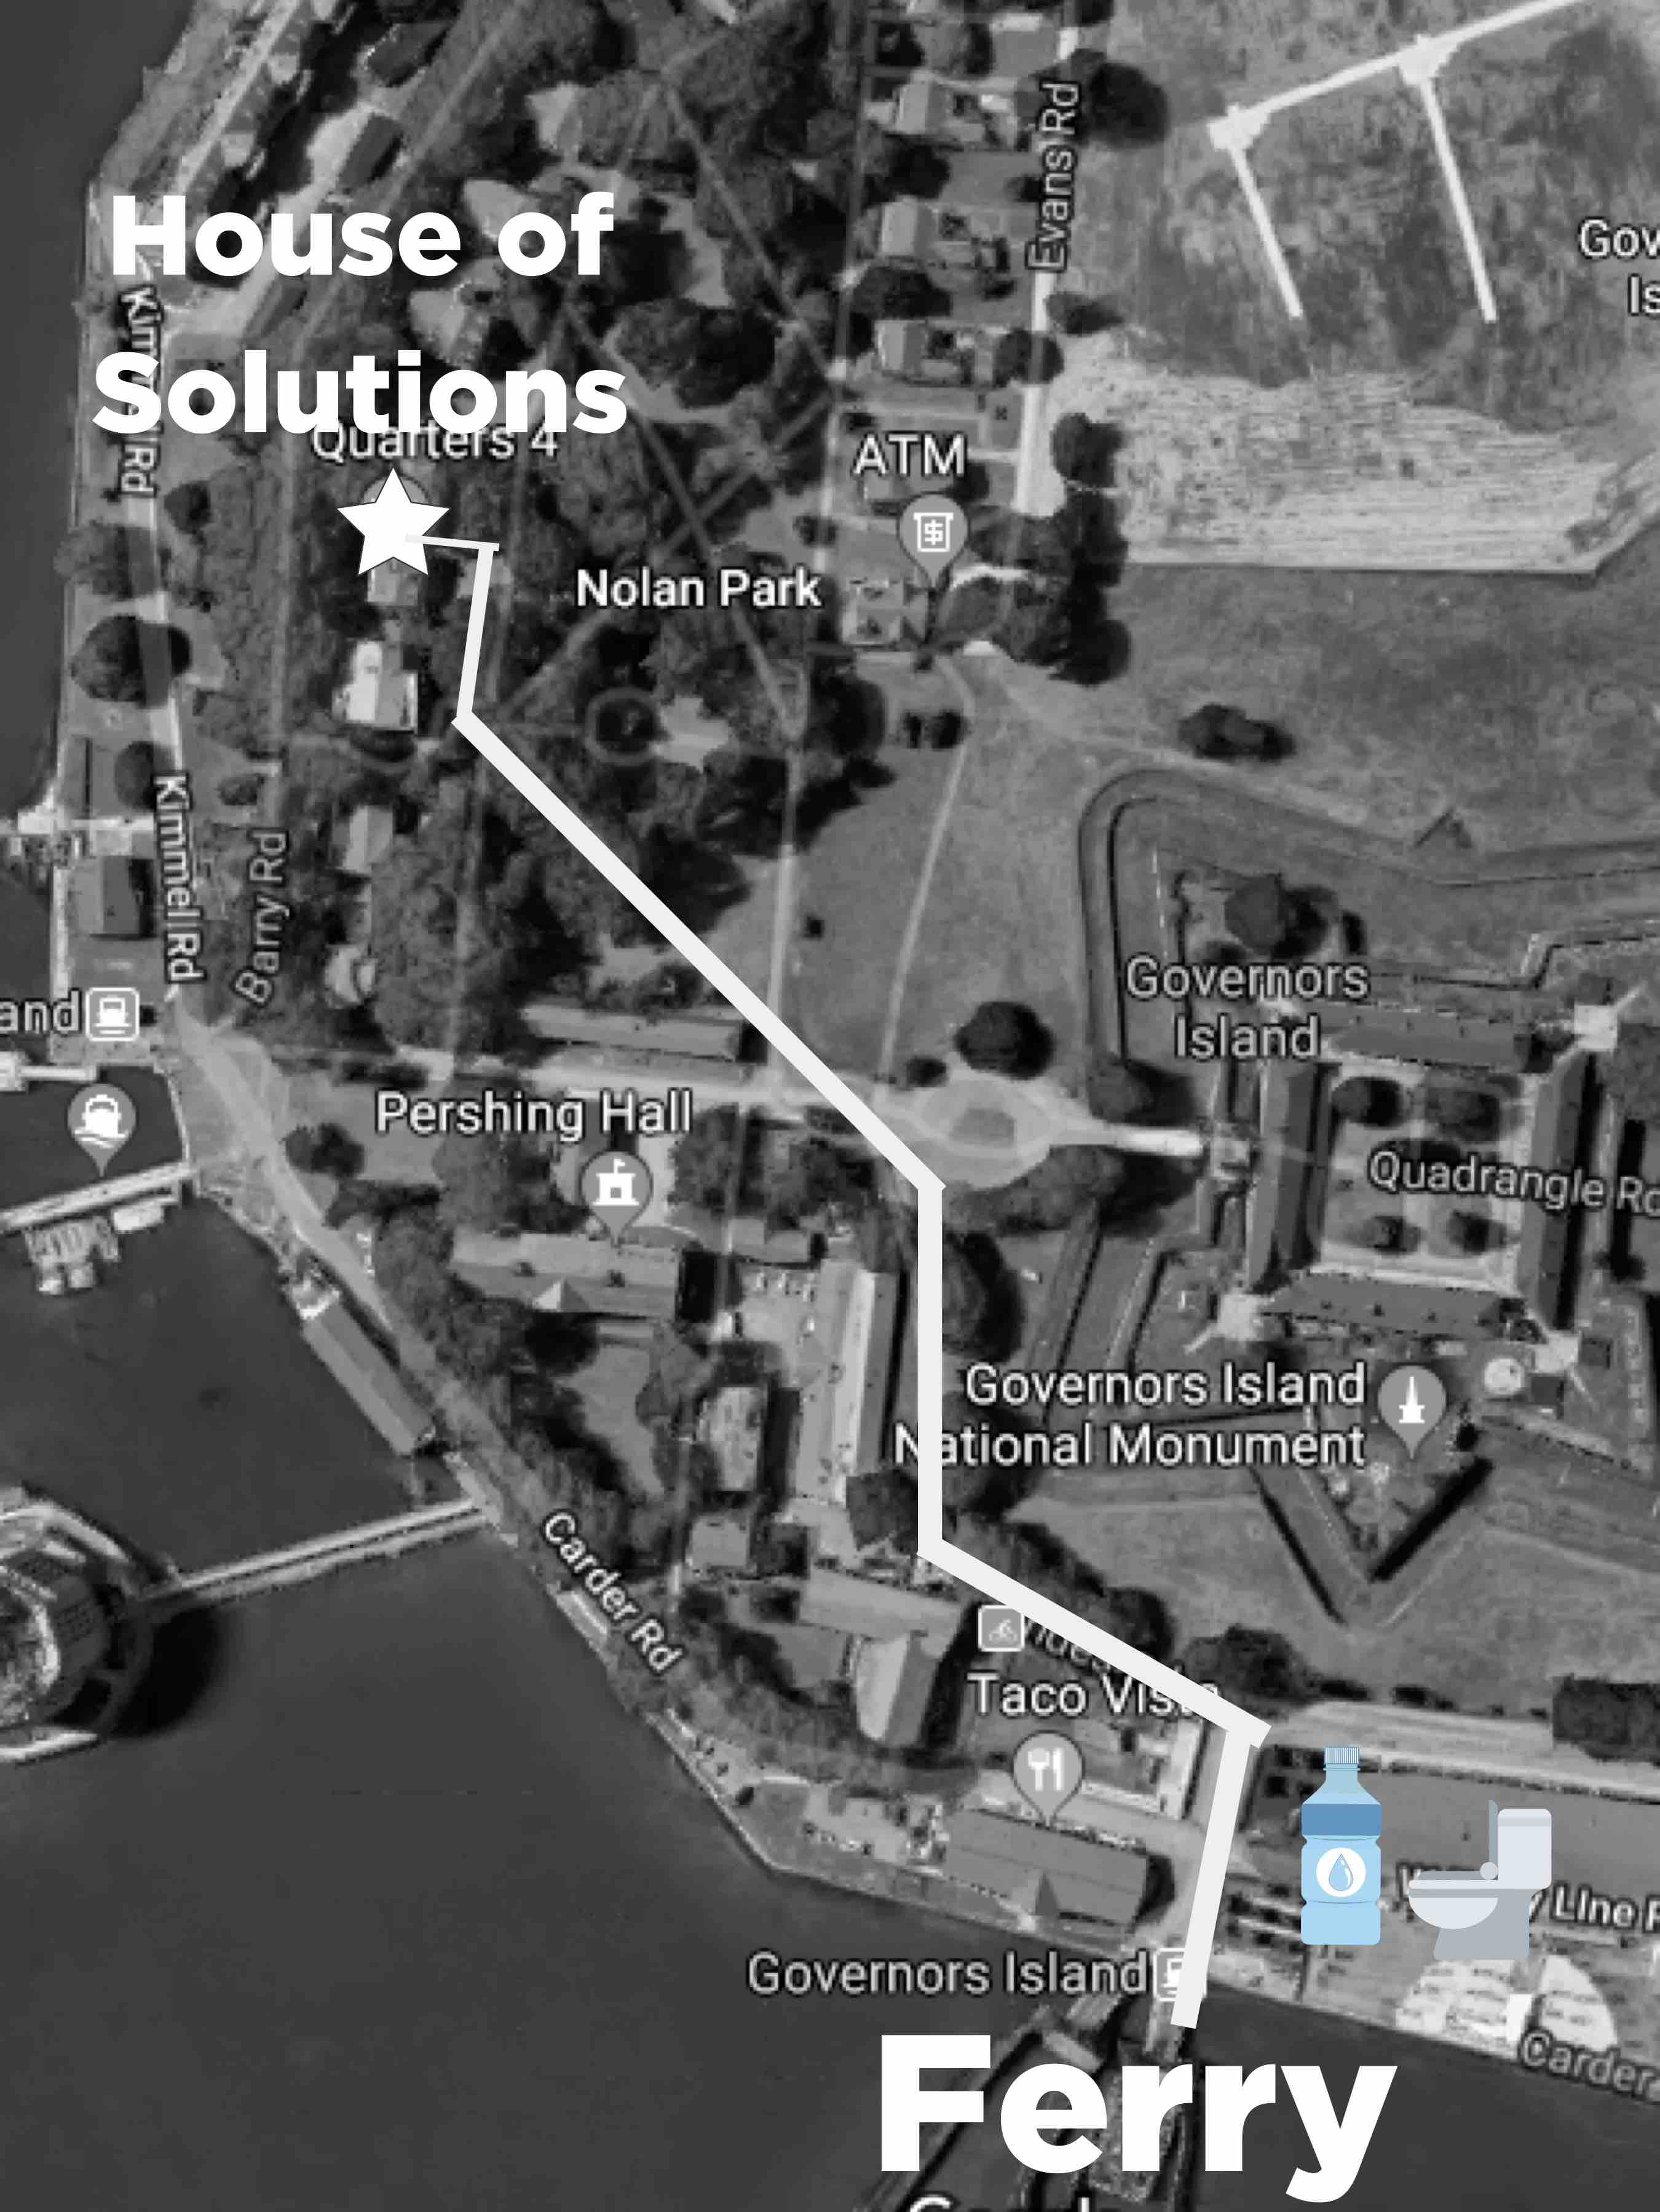 How to get to House of Solutions